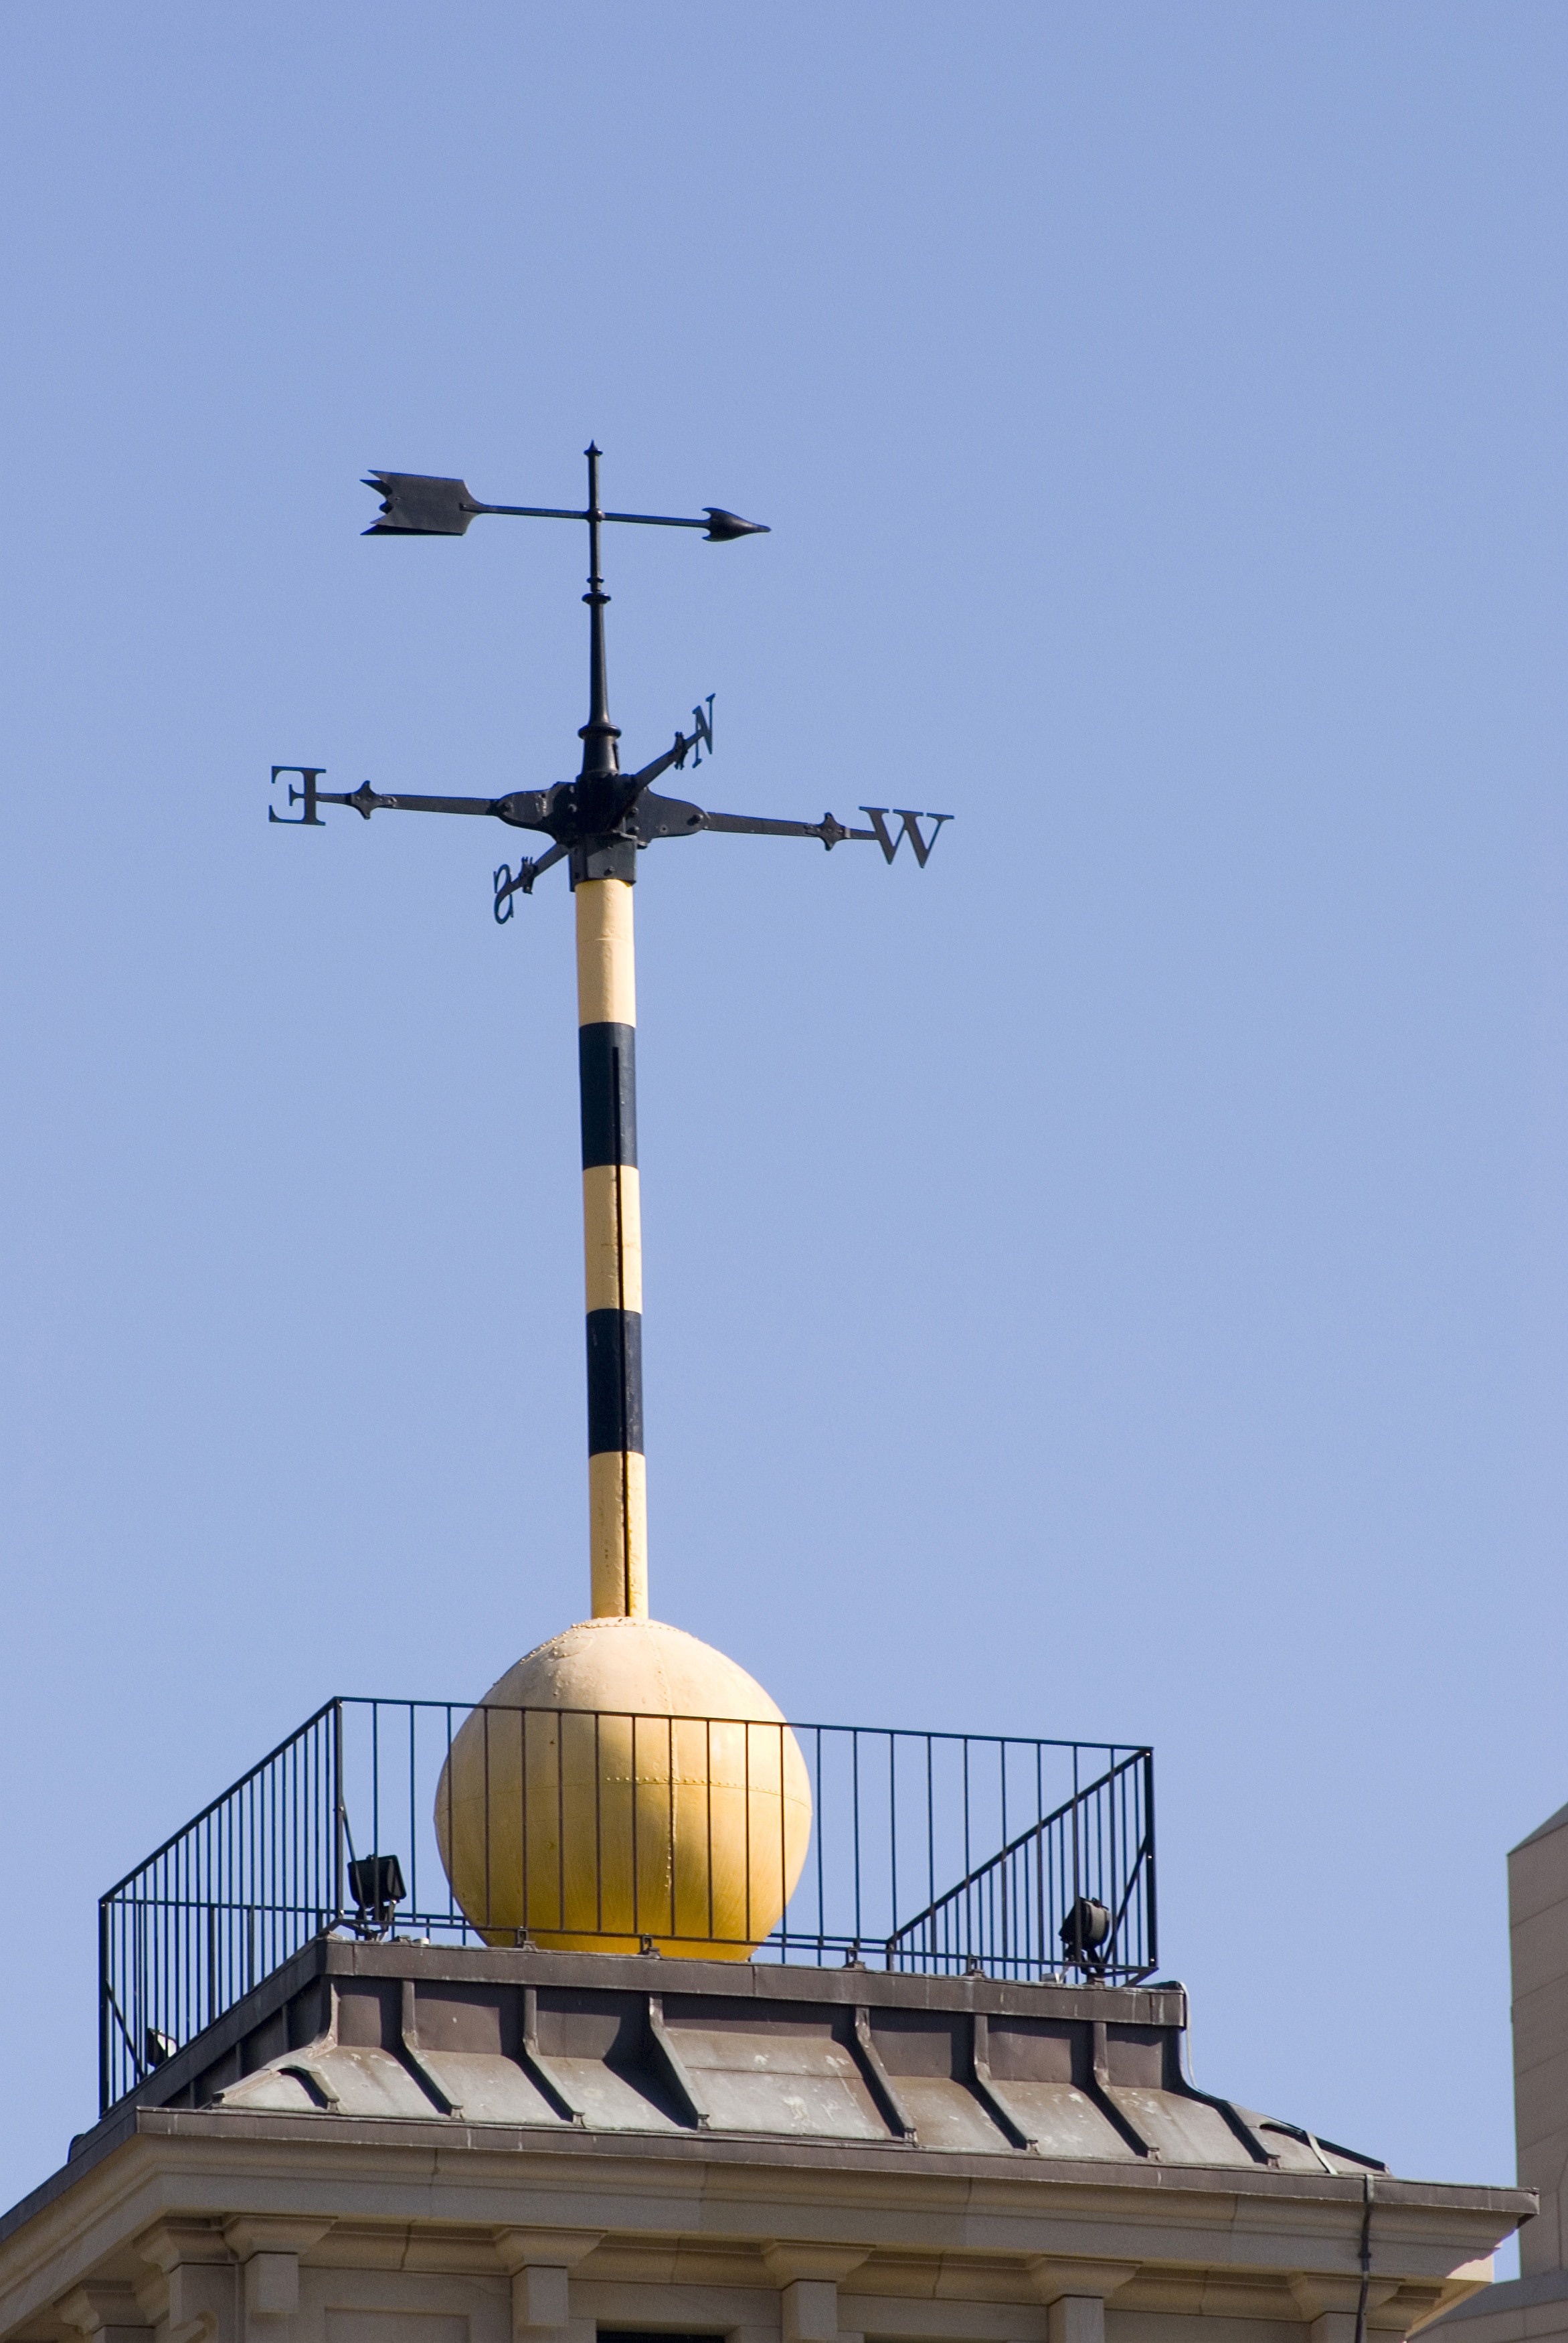 Observatory time ball and weather vane on top of a building, an obsolete time signalling device that was used by mariners to verify marine chronometers when the ball dropped at a specific time